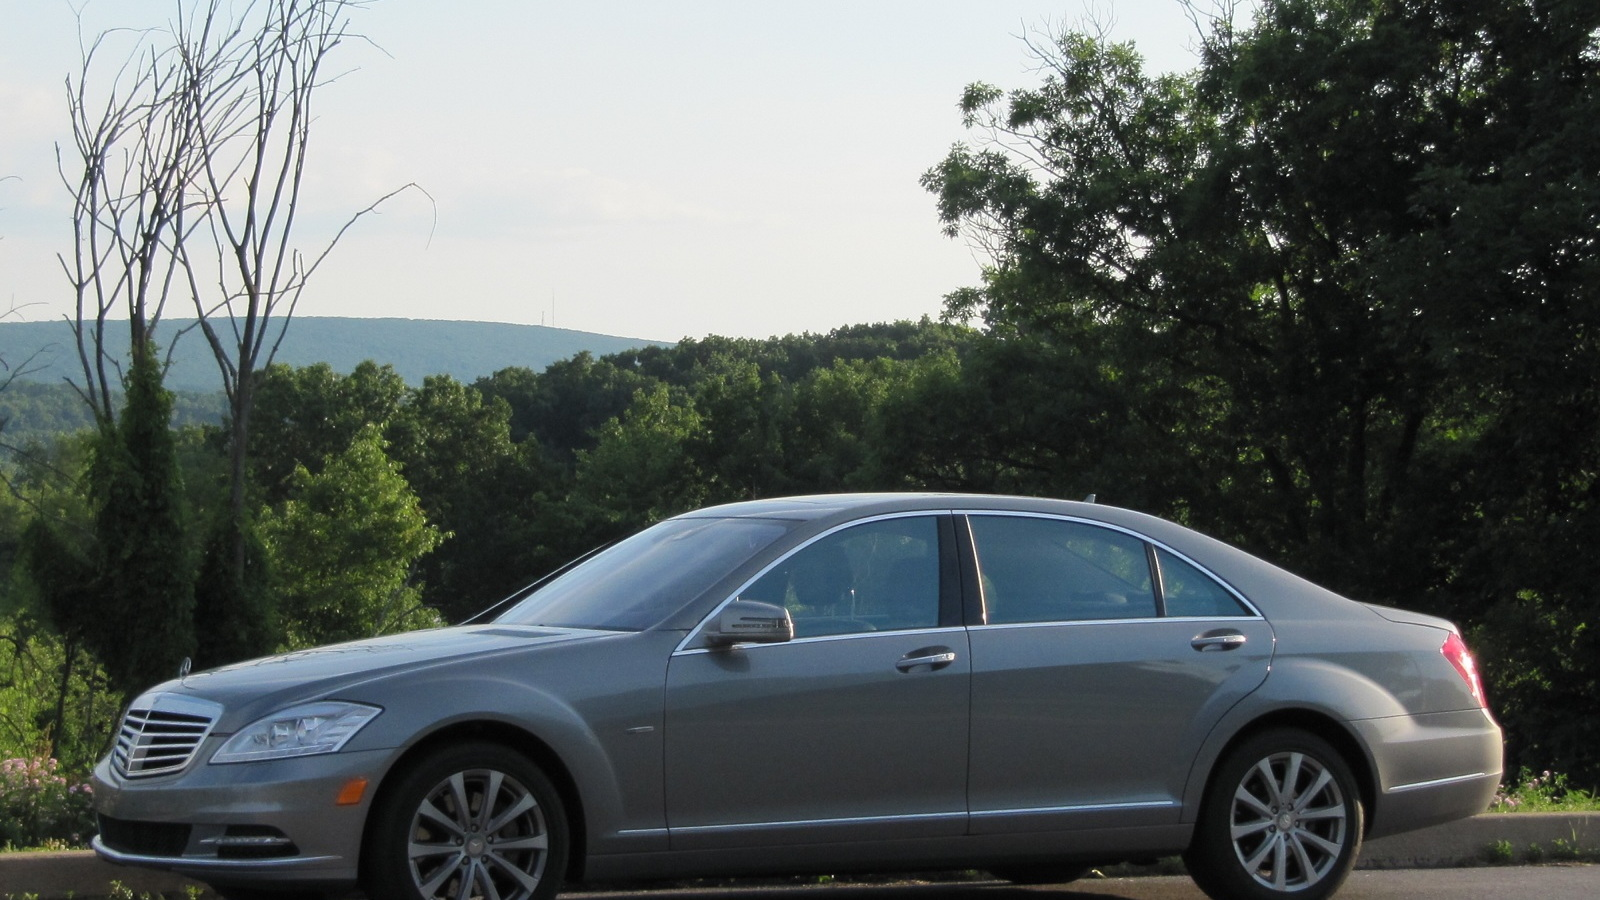 2012 Mercedes-Benz S 350 BlueTEC 4Matic, road test, June 2012